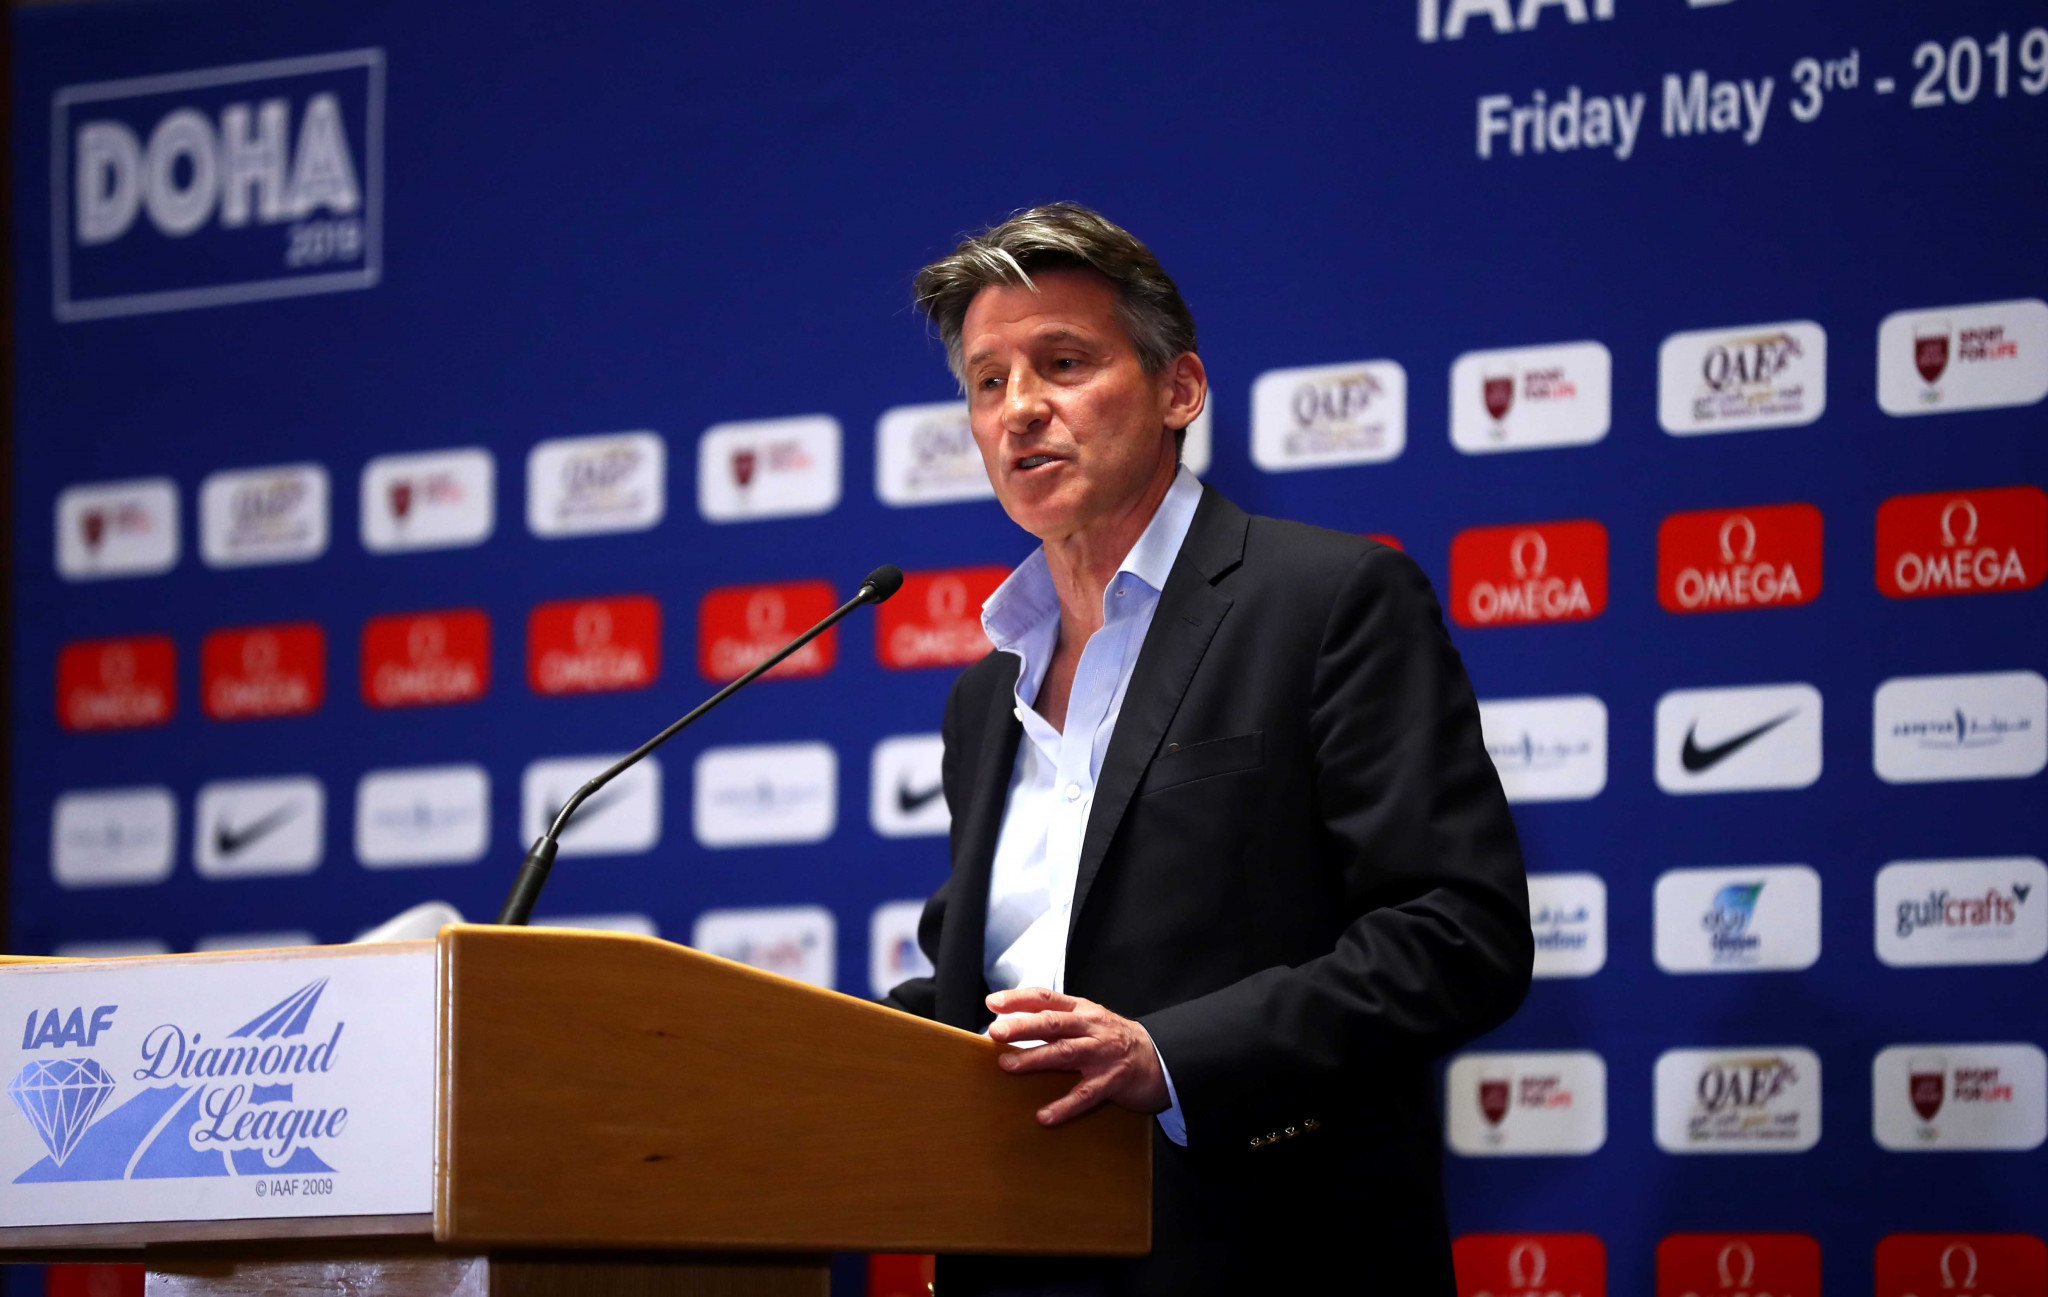 International Association of Athletics Federations President Sebastian Coe has led the campaign to have the new rules, which many claim discriminate against Caster Semenya, implemented ©Getty Images